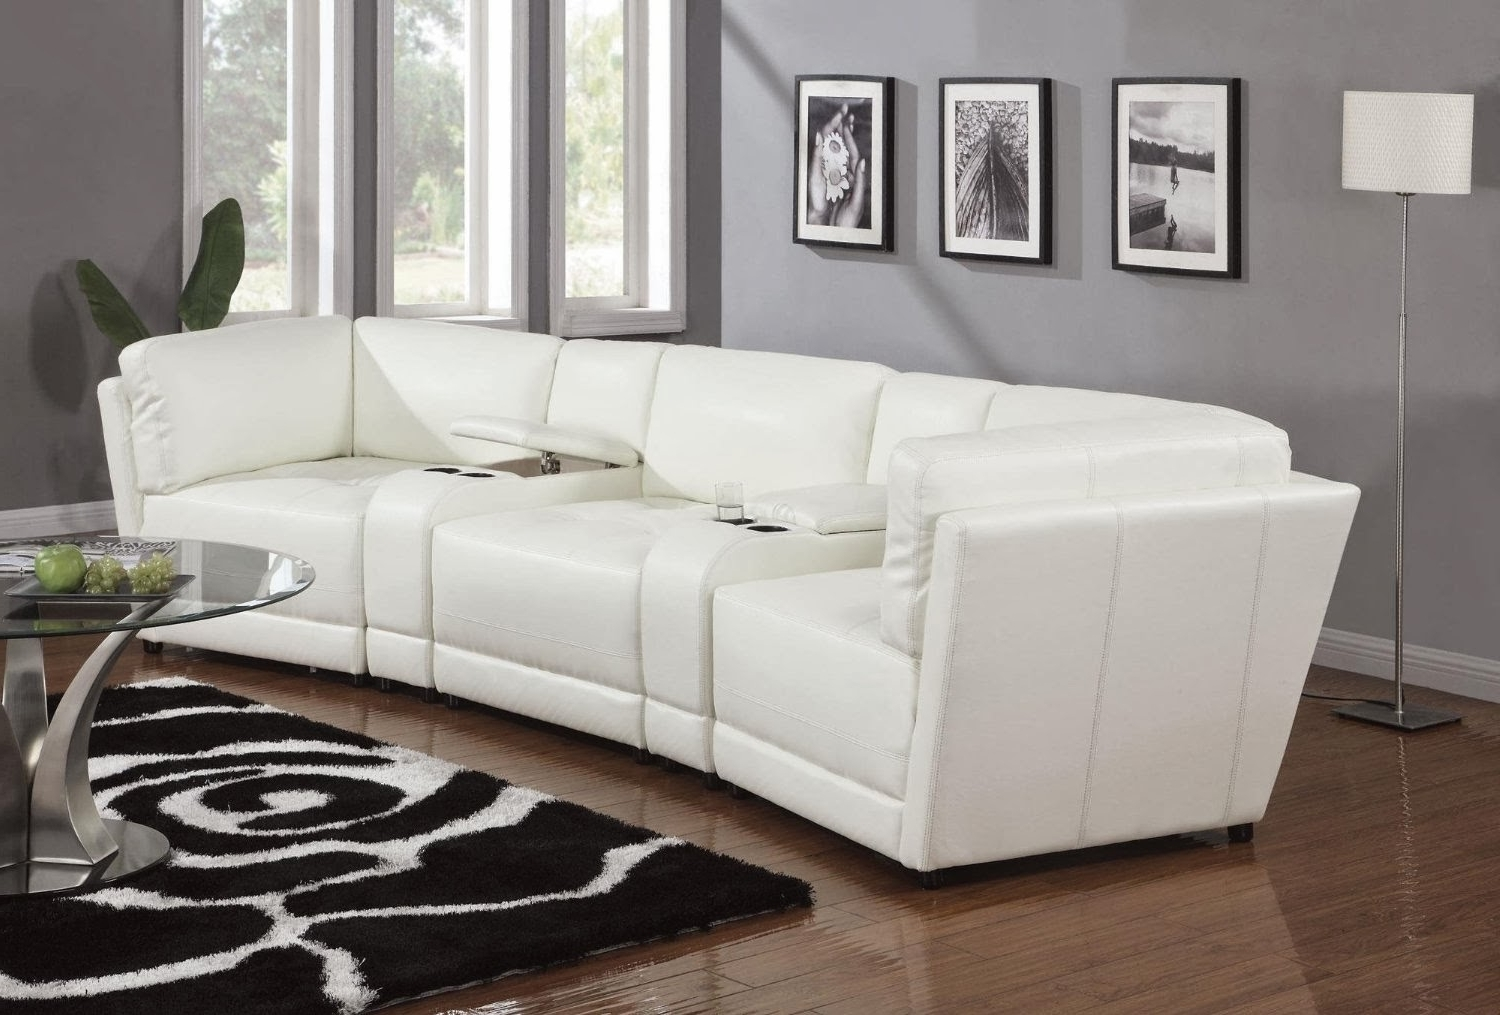 Fashionable Petite Sectional Sofa – Cleanupflorida Regarding Vancouver Bc Sectional Sofas (View 3 of 20)